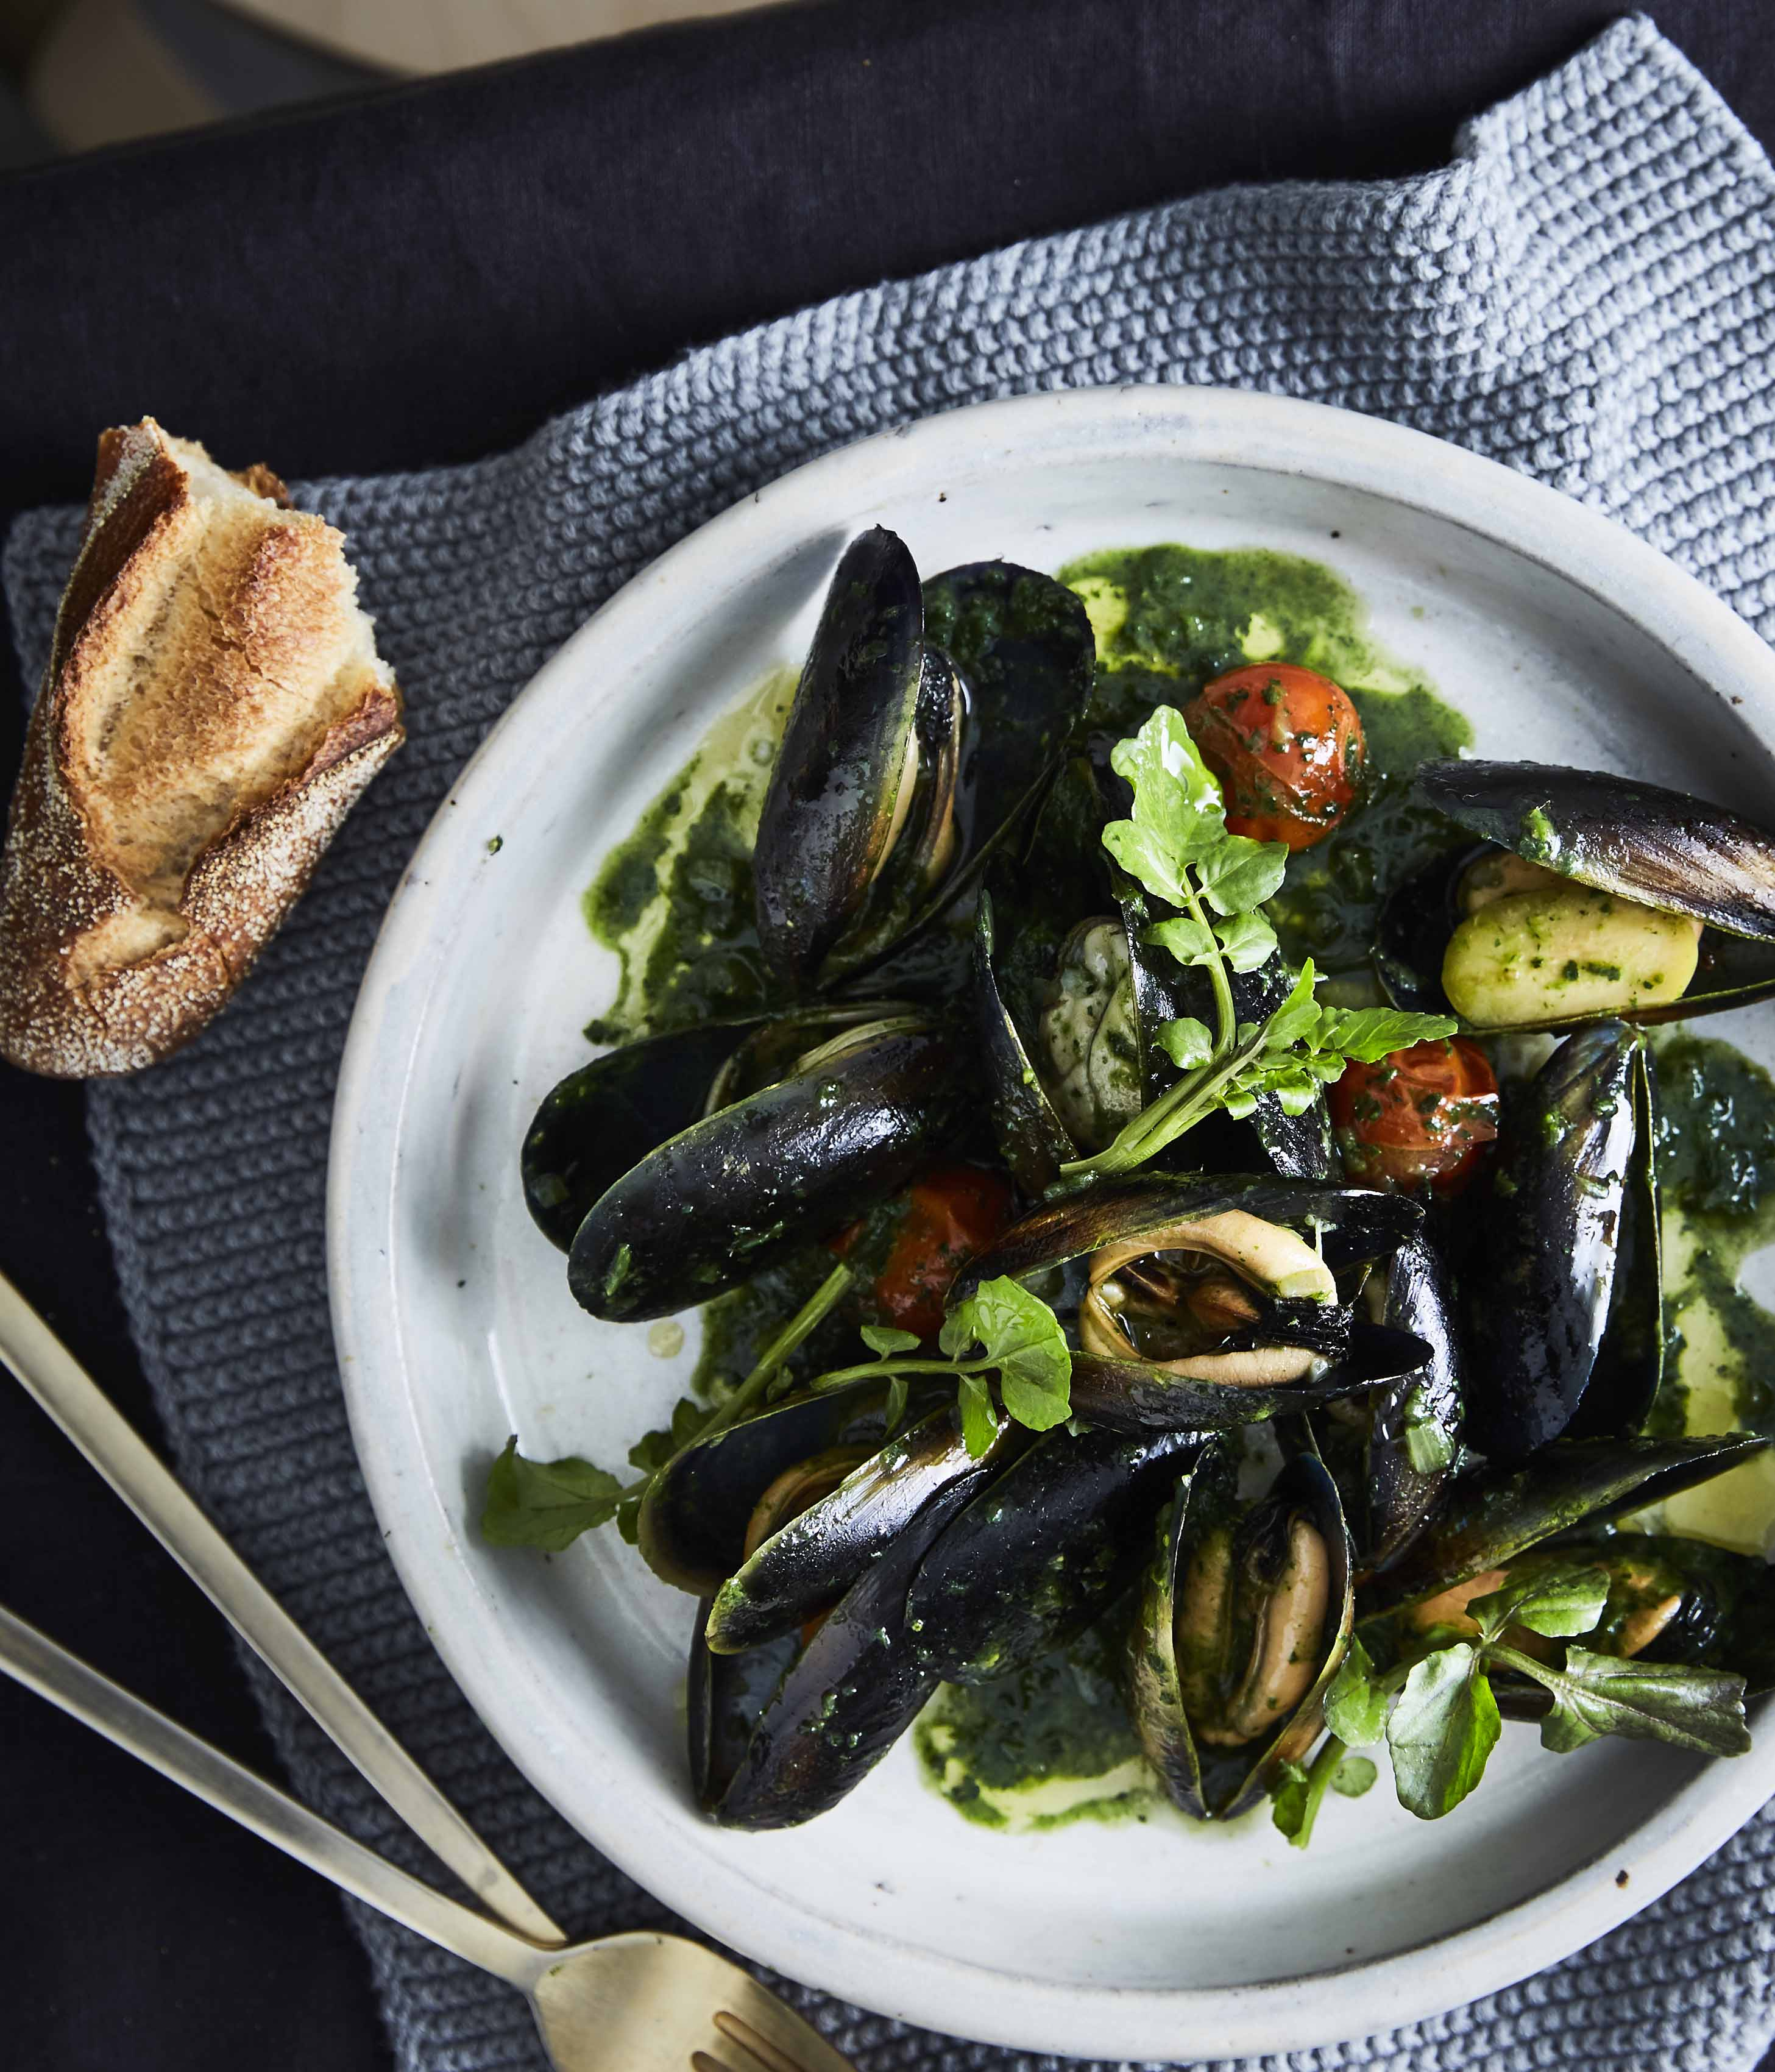 Banksii's mussels with vermouth, green olives and nettle butter